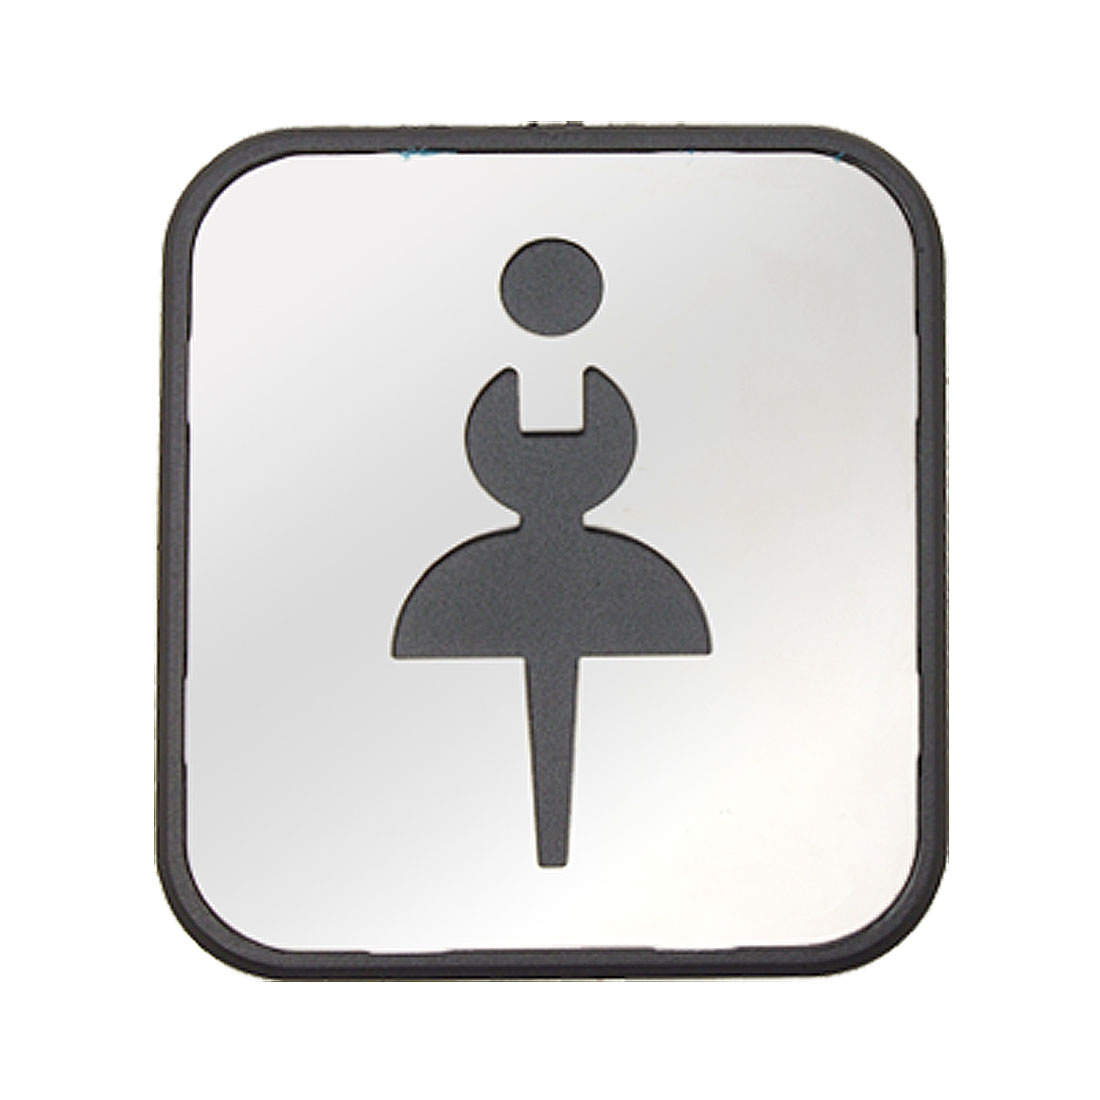 Stainless Steel Lady Washroom Instruction Board Architecture Hardware